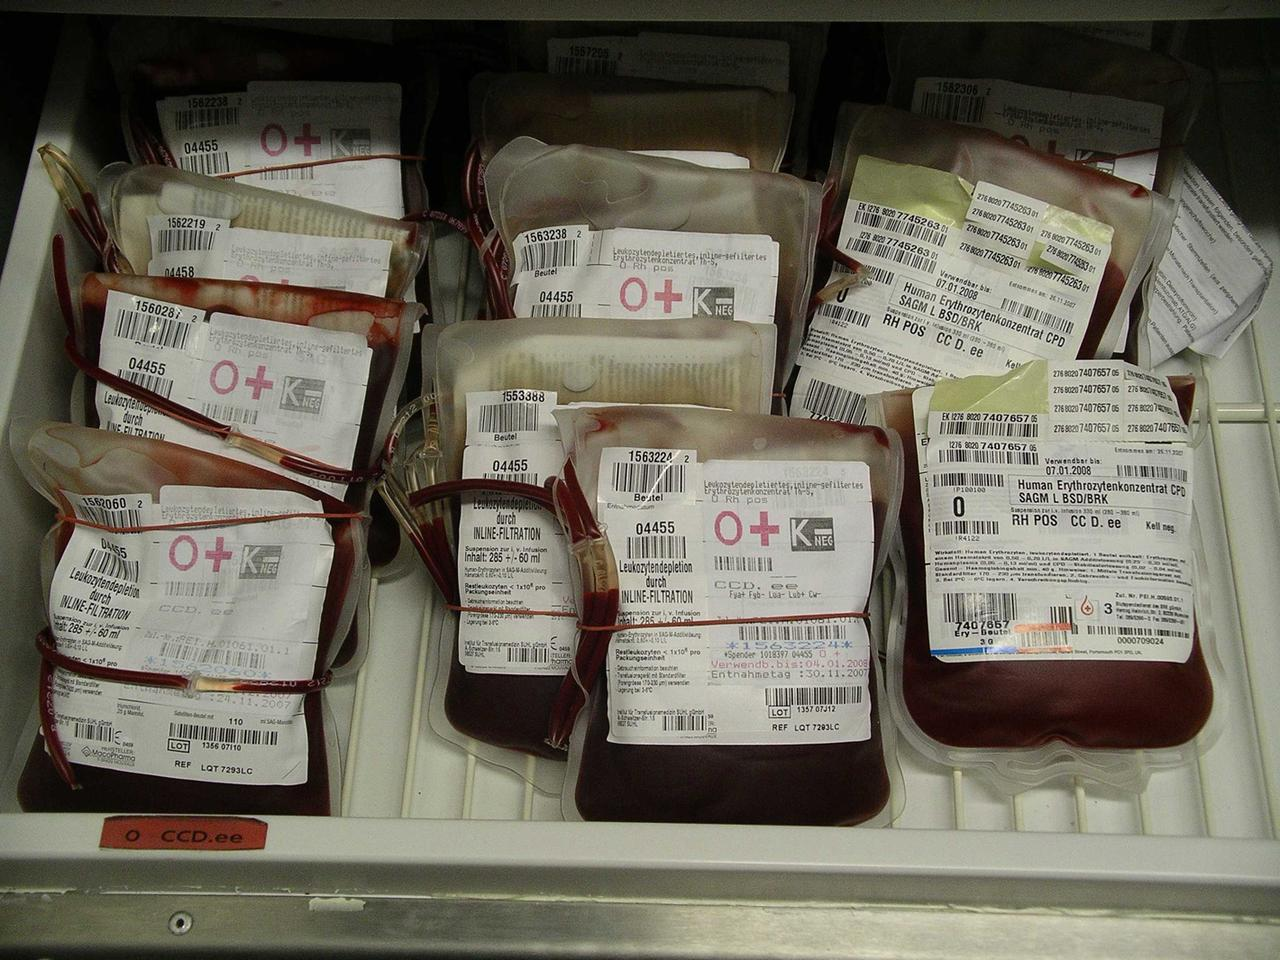 Intelligent, radio-enabled blood bags could monitor blood temperature to avoid wastes and track supplies in real time.